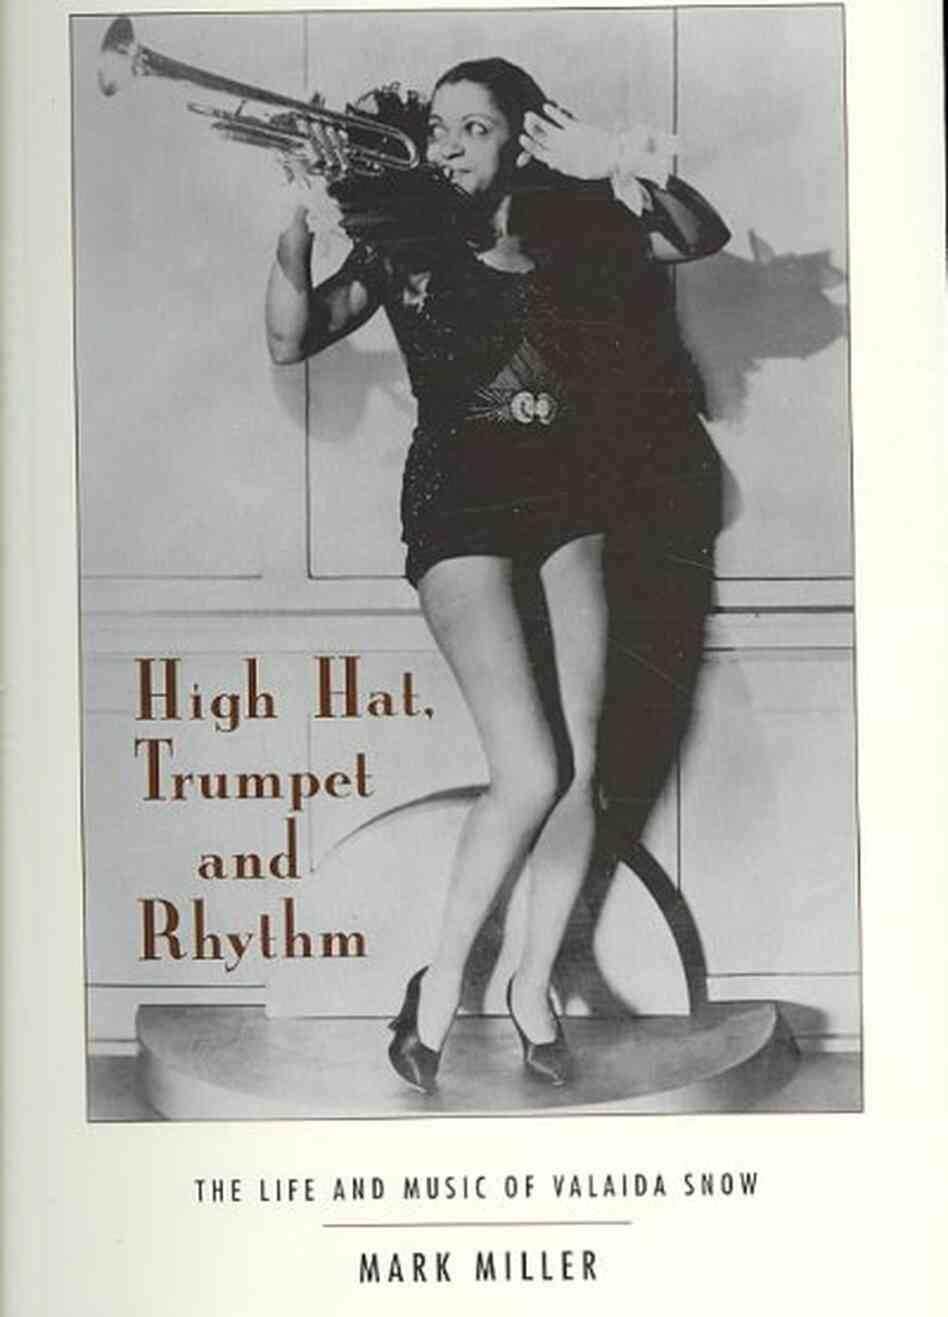 High Hat, Trumpet, and Rhythm